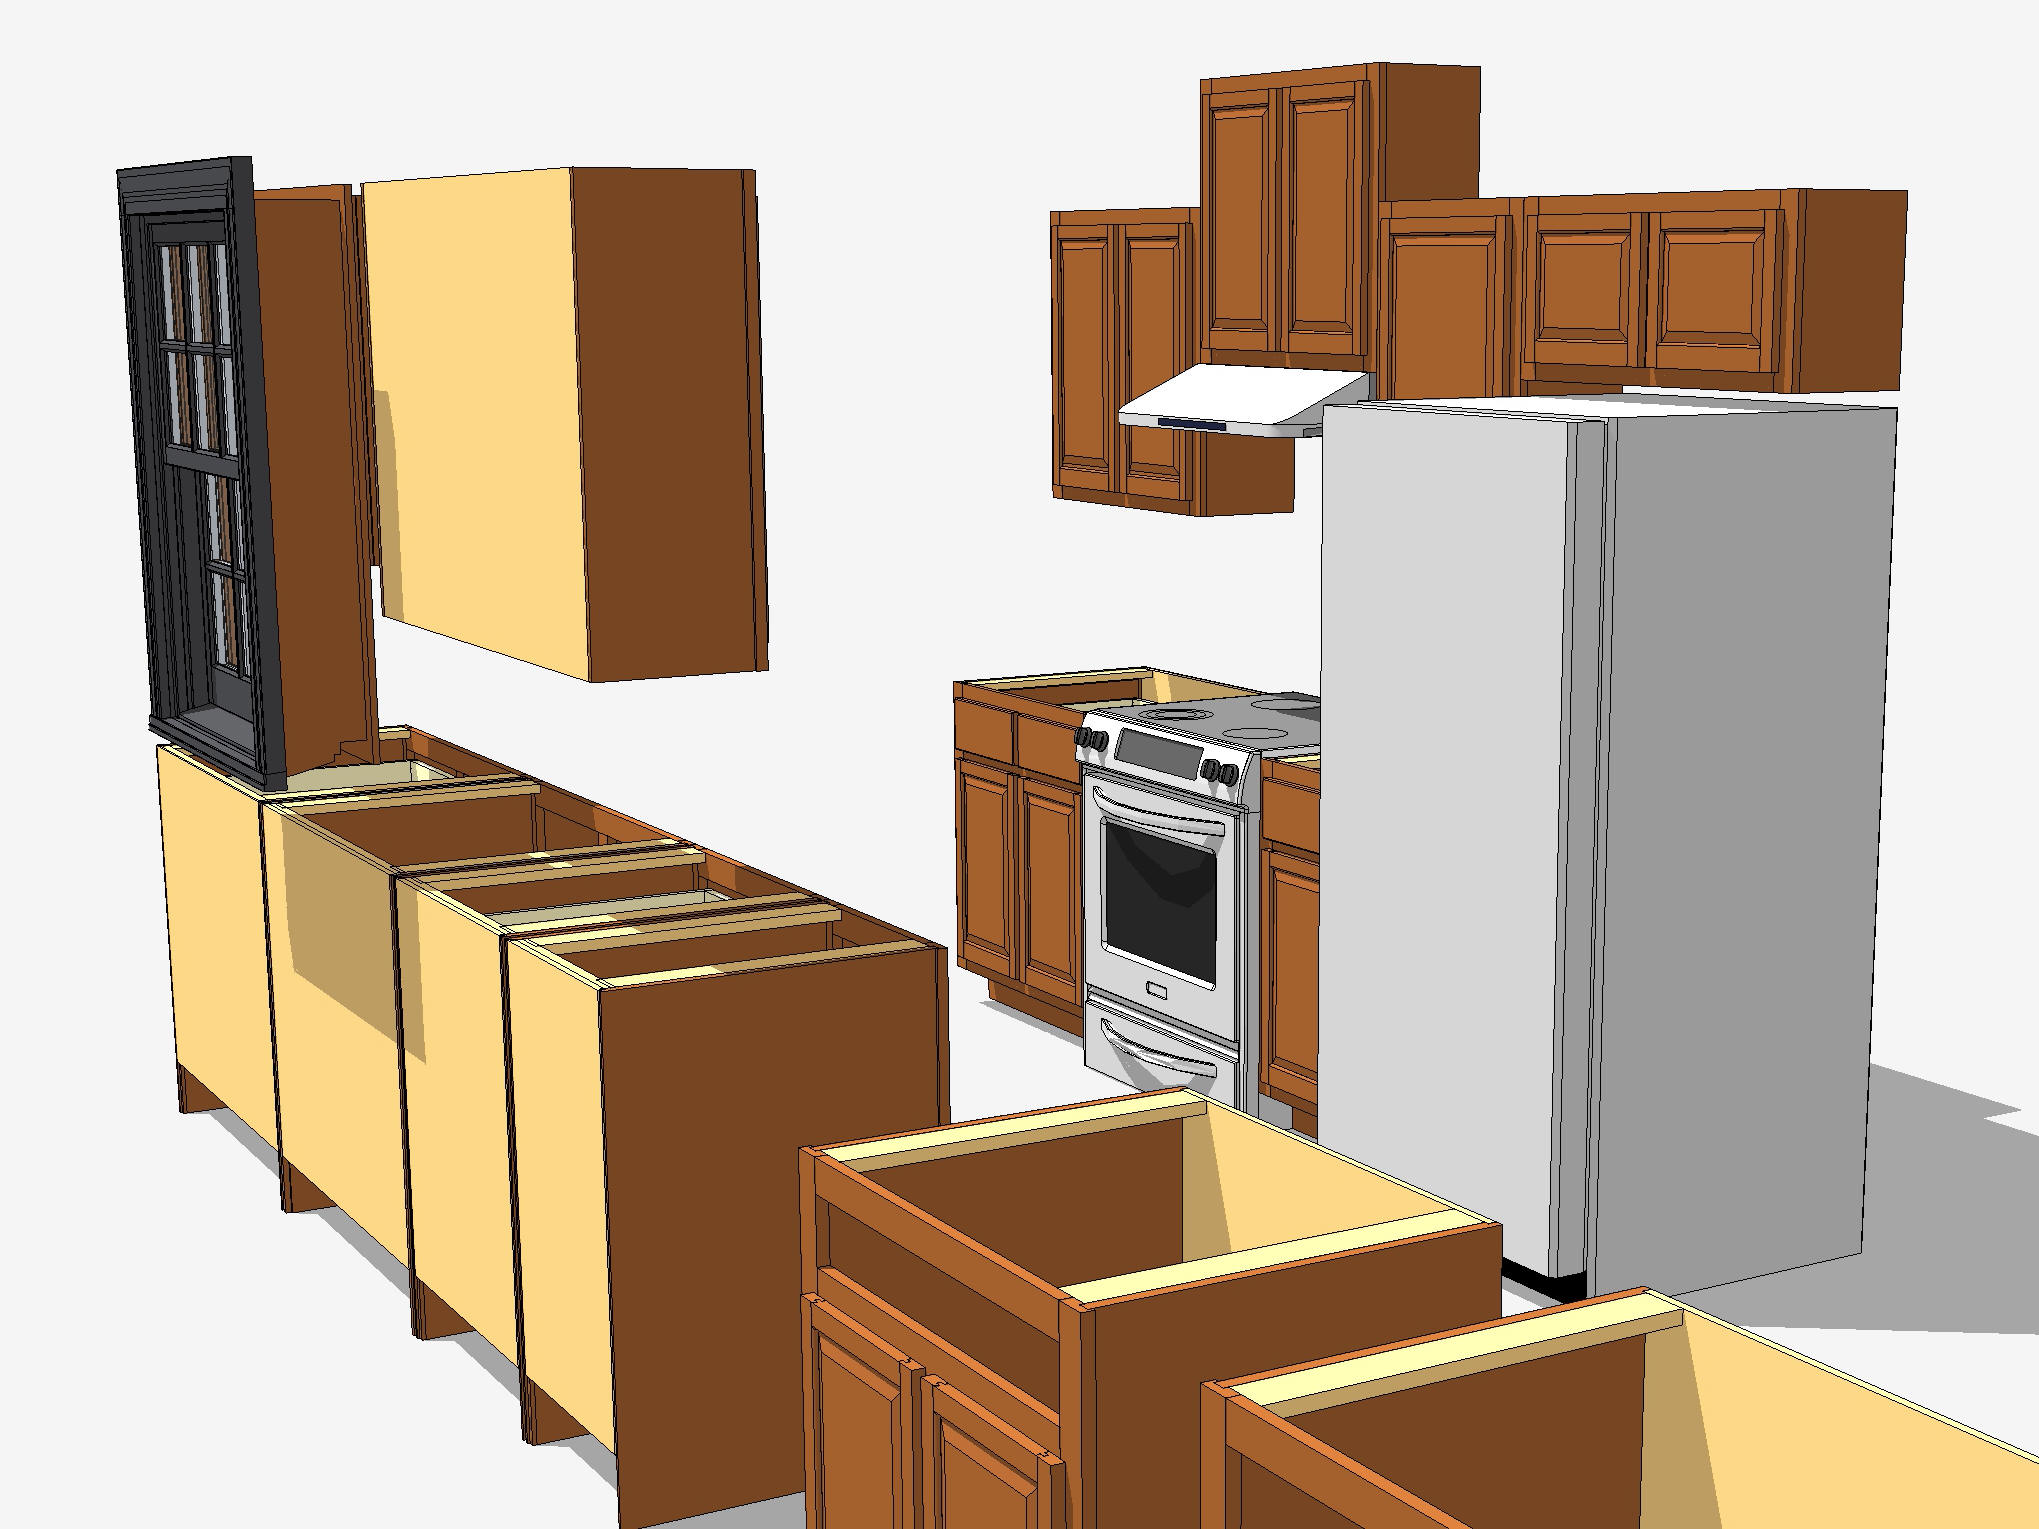 SketchUp For Cabinet Shop Project Management | ReadWatchDo.com